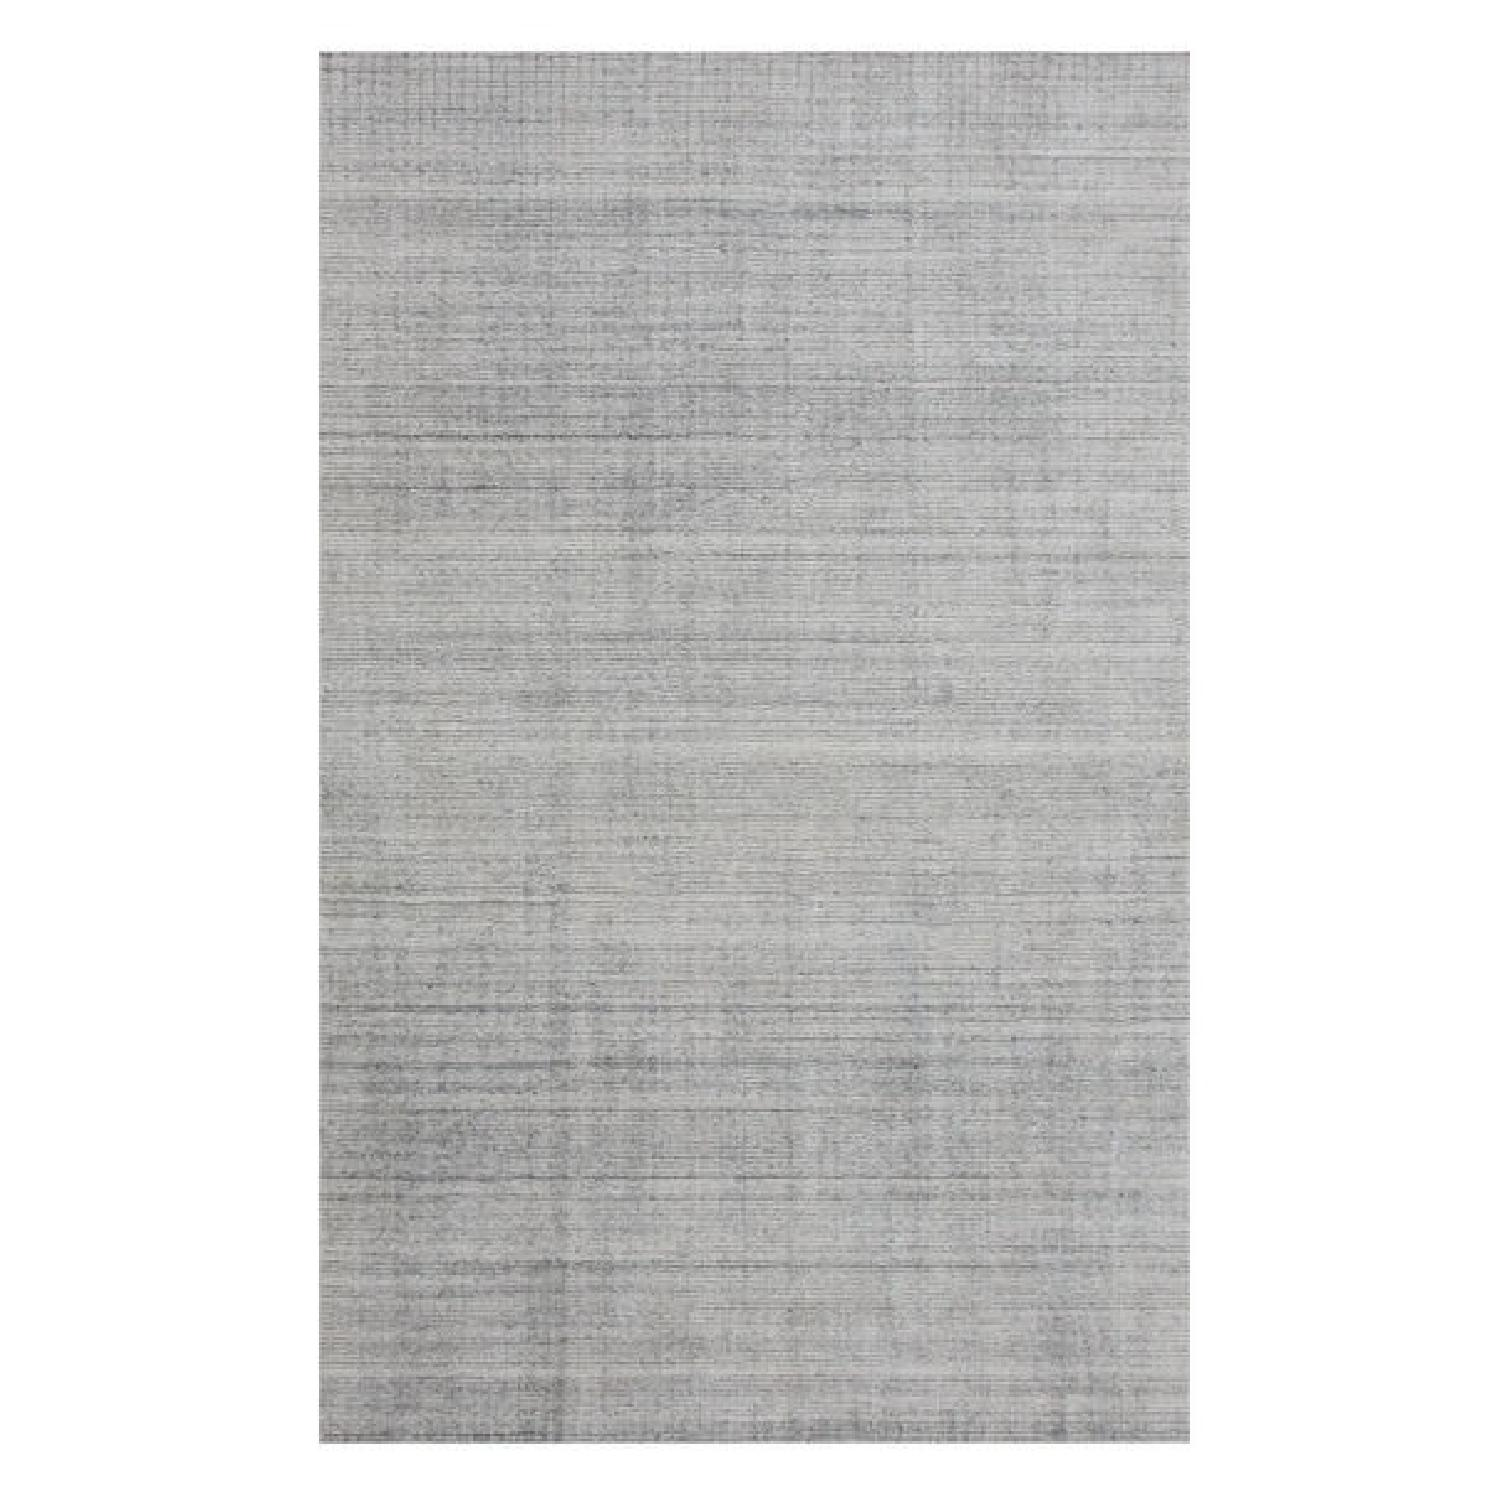 Mitchell Gold + Bob Williams Dresher Rug in Silver-0